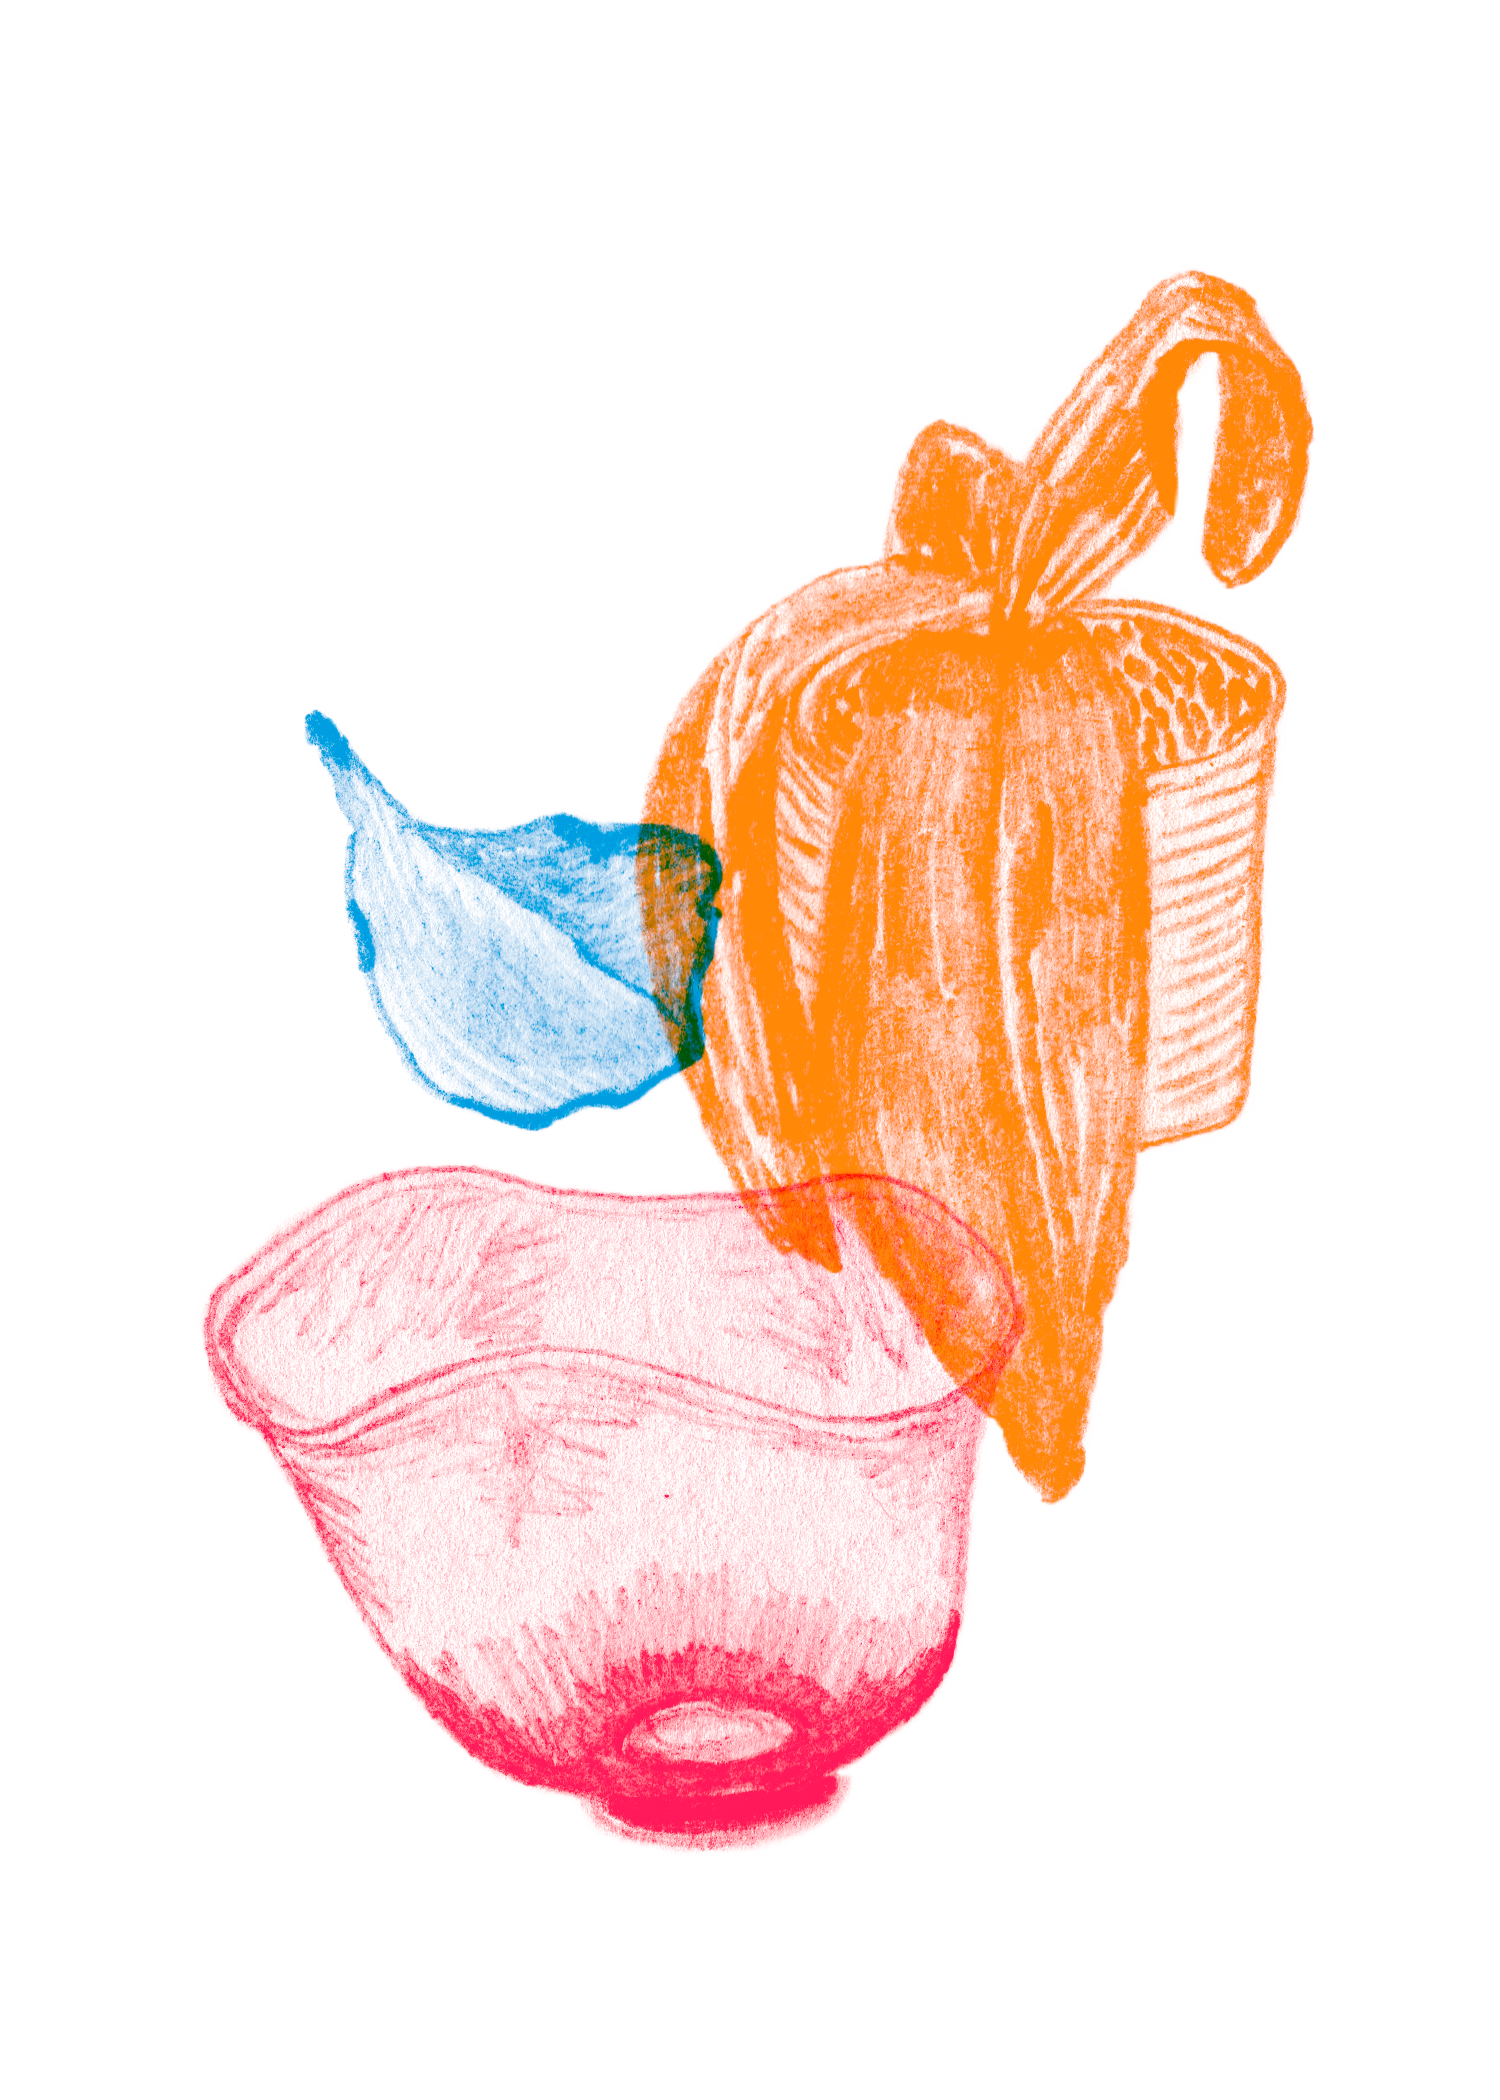 DrawingCollage_Transparent.png